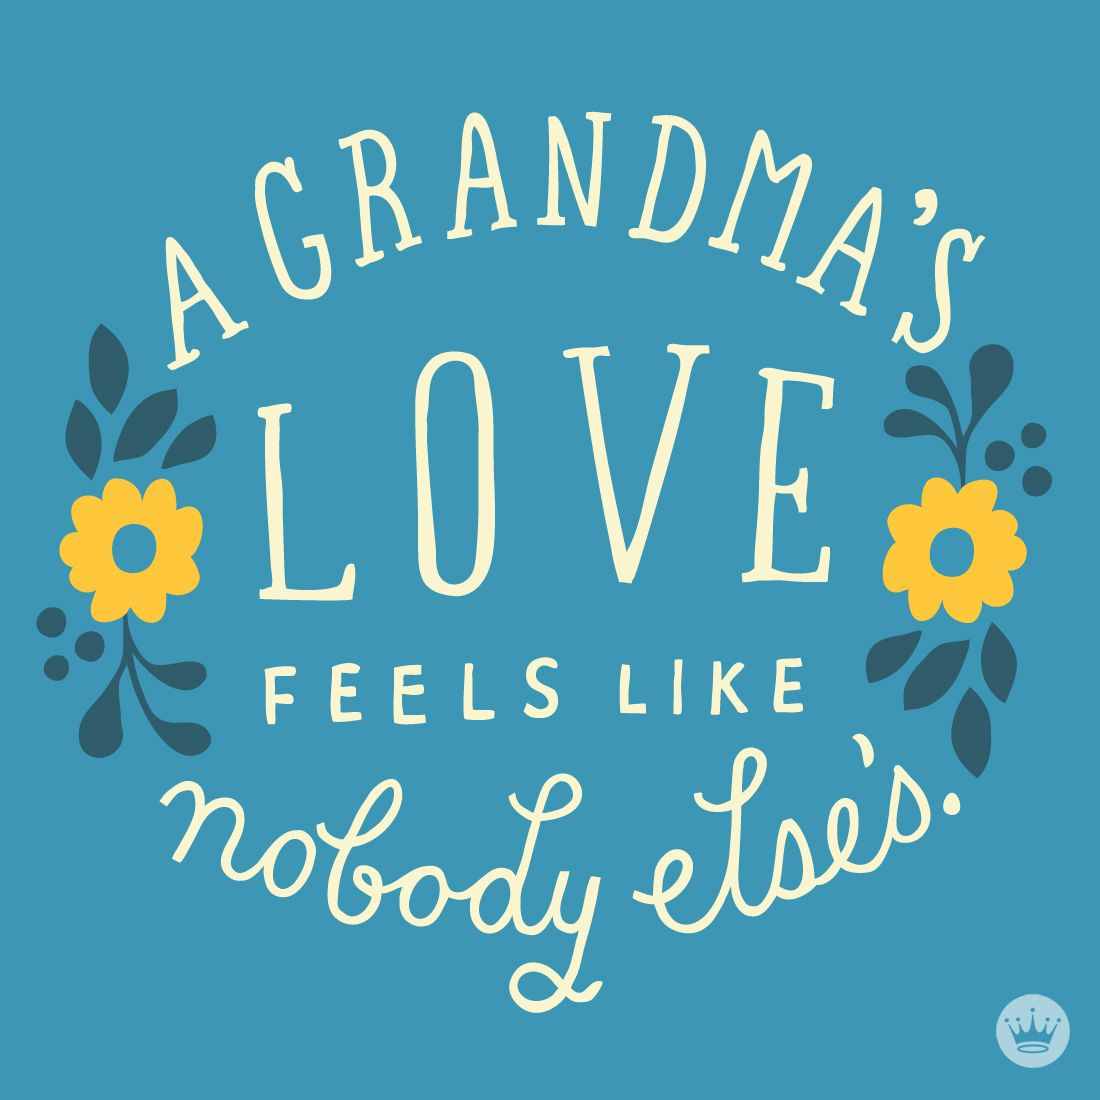 Grandma Quotes The Perfect Quote For A Grandmother You Love Words To Live